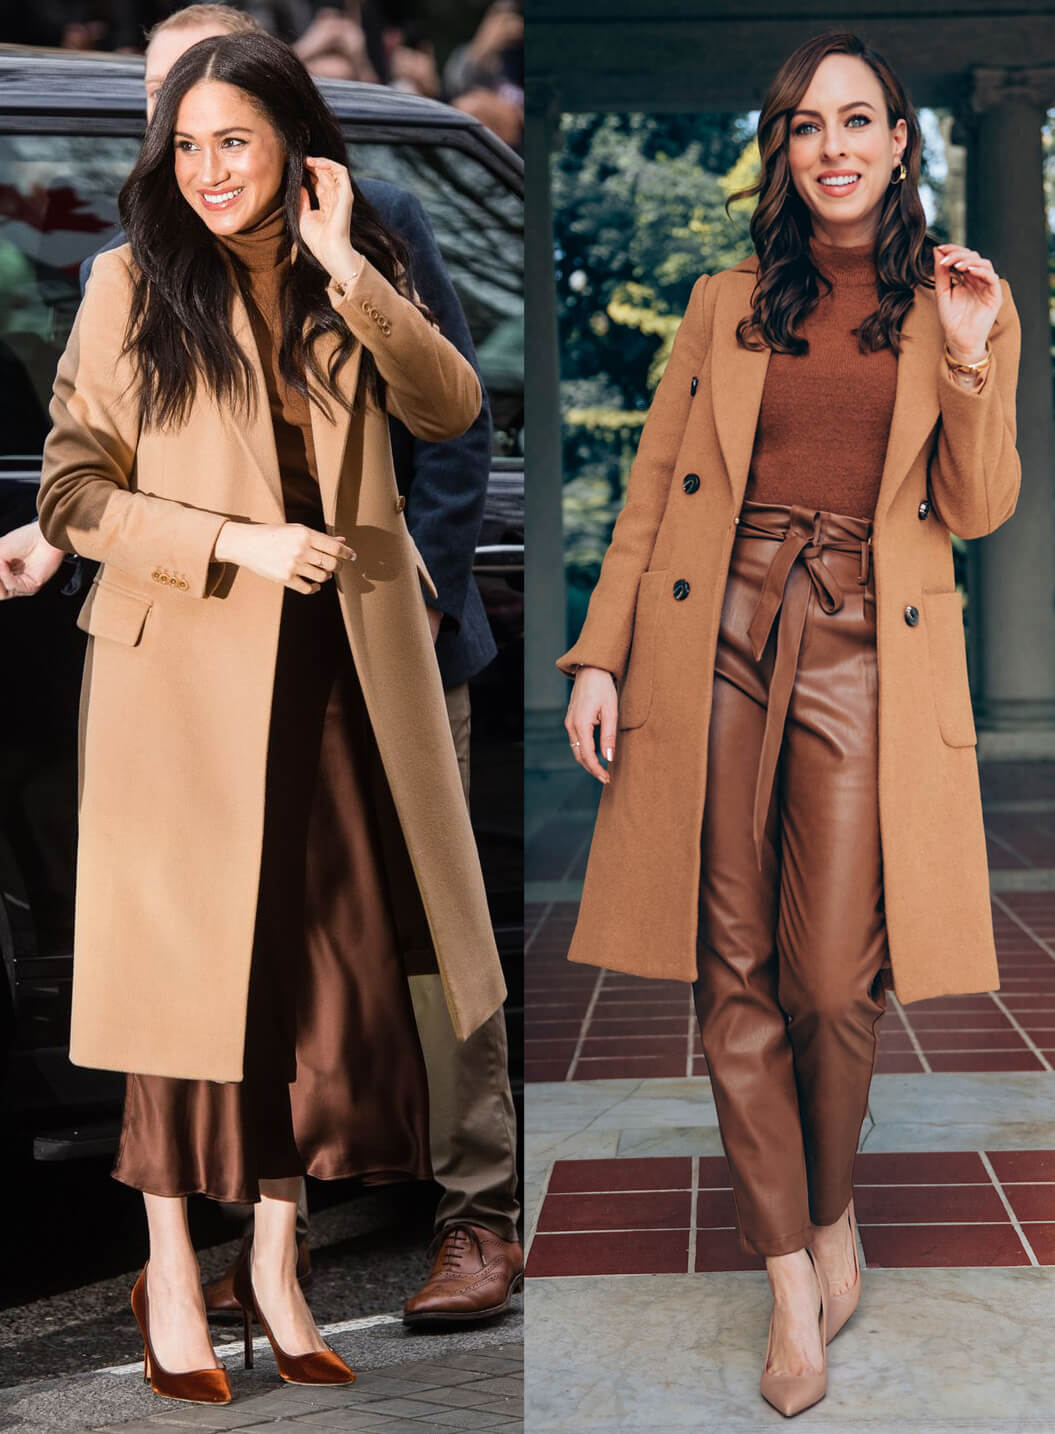 Sydne Style shows how to dress like meghan markle in camel coat and brown and tan color palette